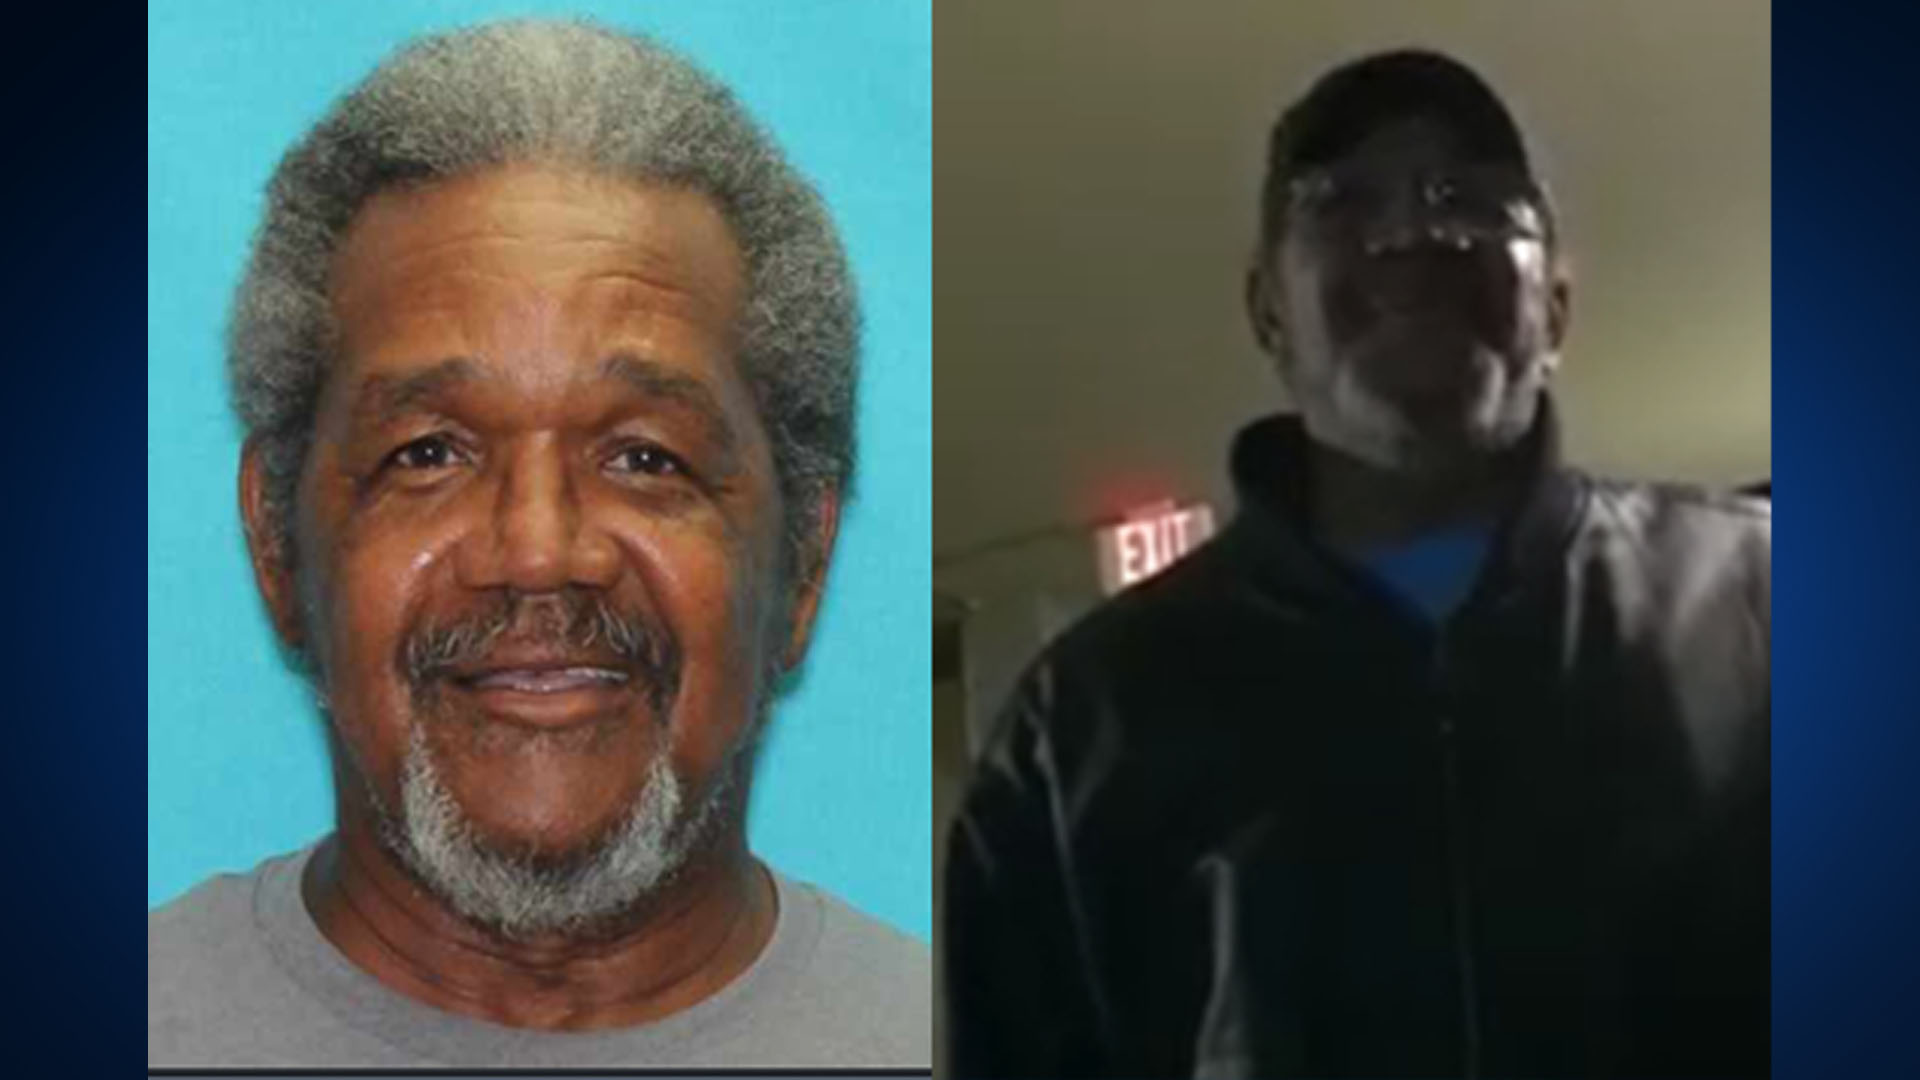 APD said Charles Younger, 71, was reported missing Thursday morning. He has medical conditions, and they are concerned for his wellbeing. (APD Photos)